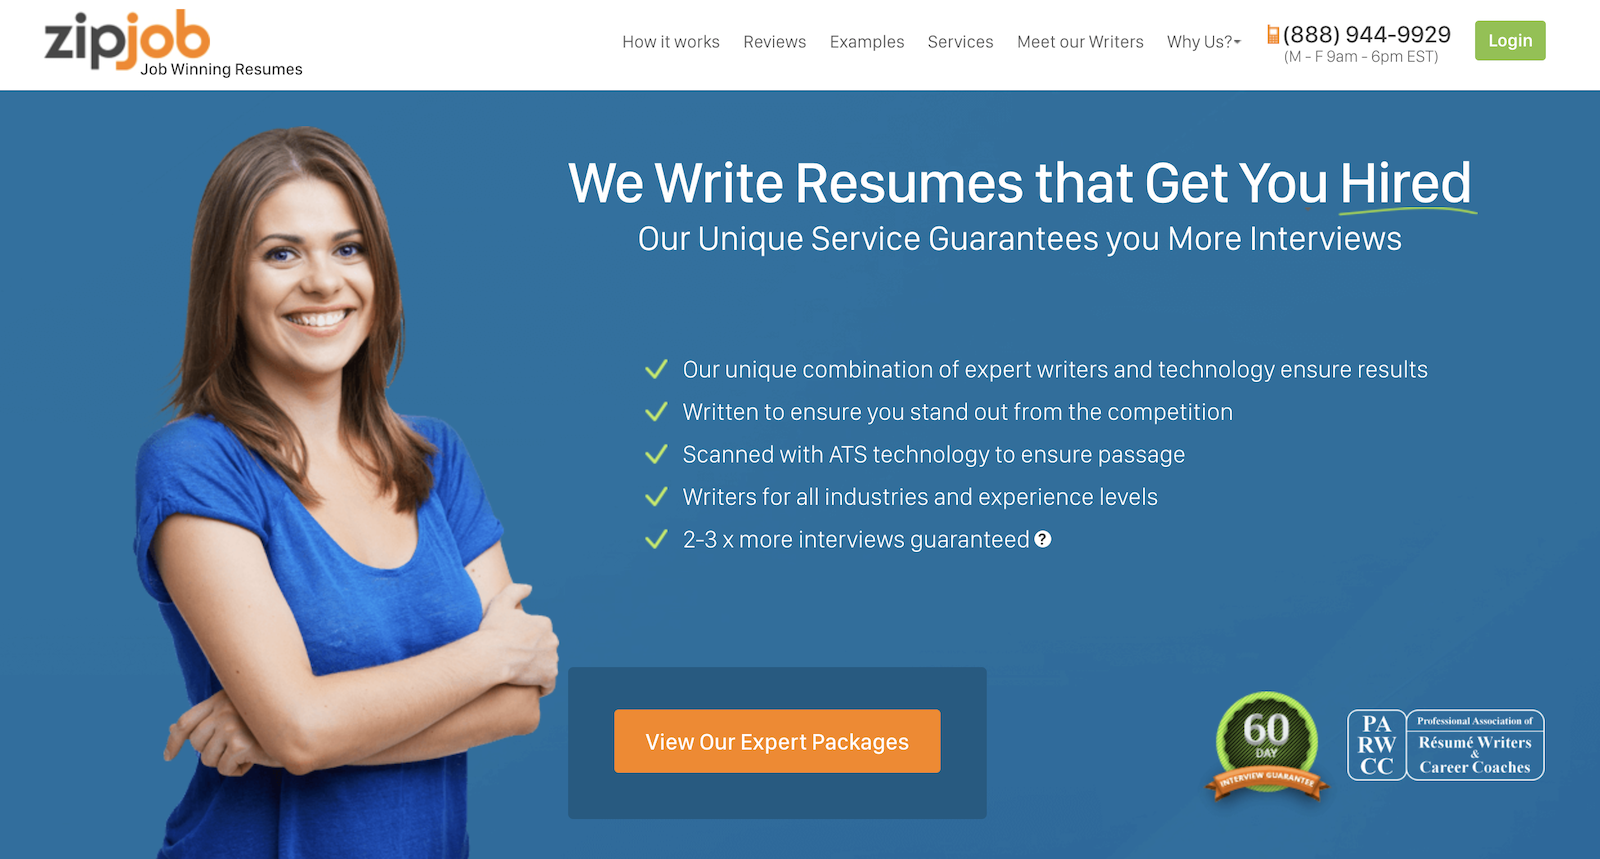 Zipjob - Reviews, Cost, and More